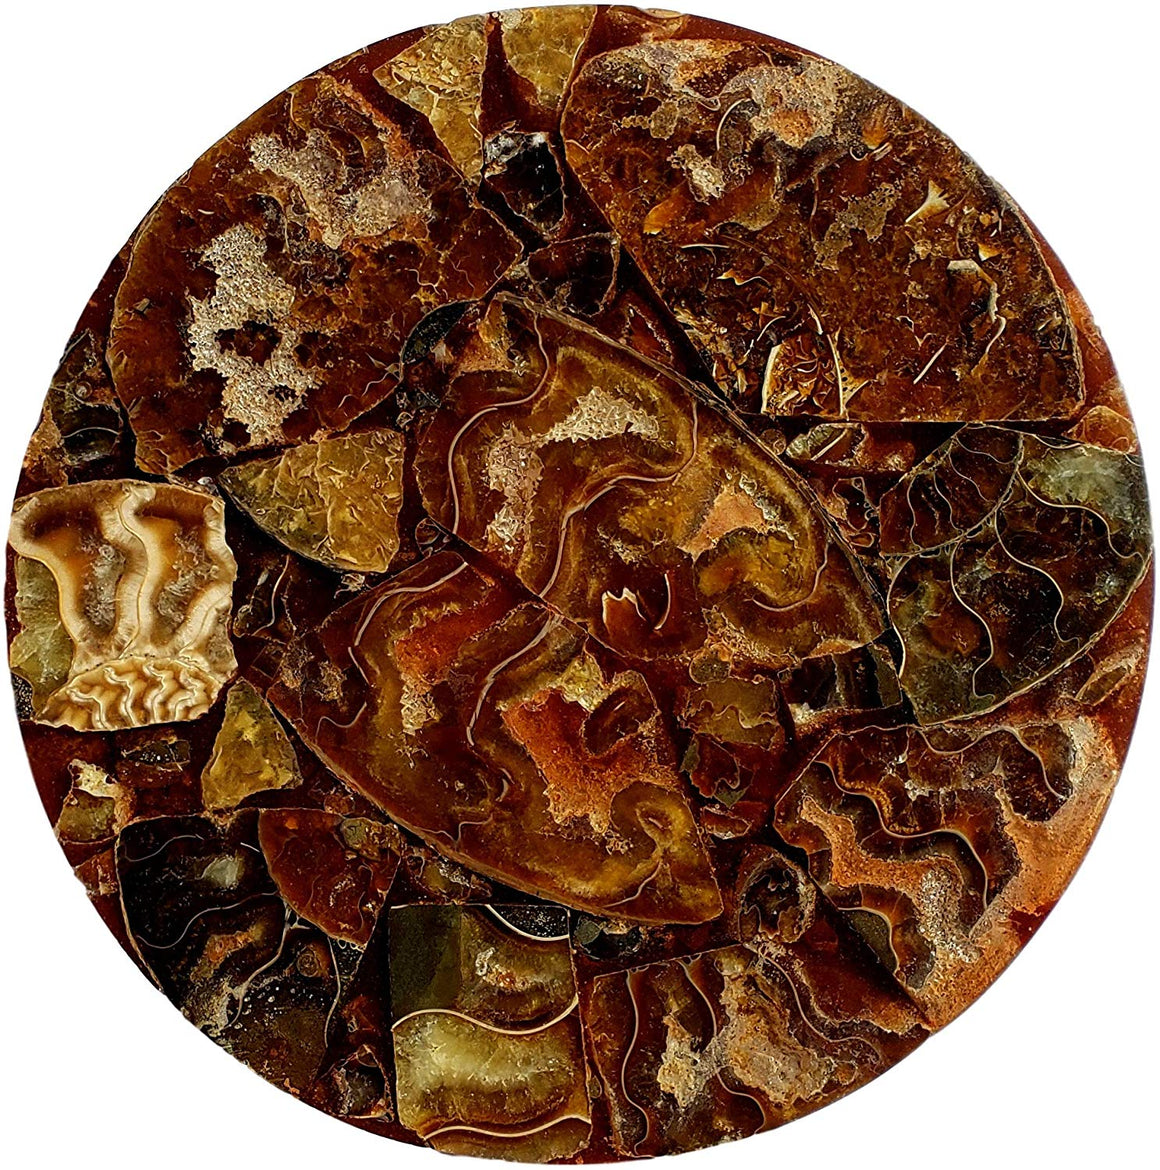 Genuine Multi-Ammonite Fossil Collage Display Specimen and Decorative Serving Platter or Large Coaster from Madagascar (Small) - dinosaursrocksuperstore